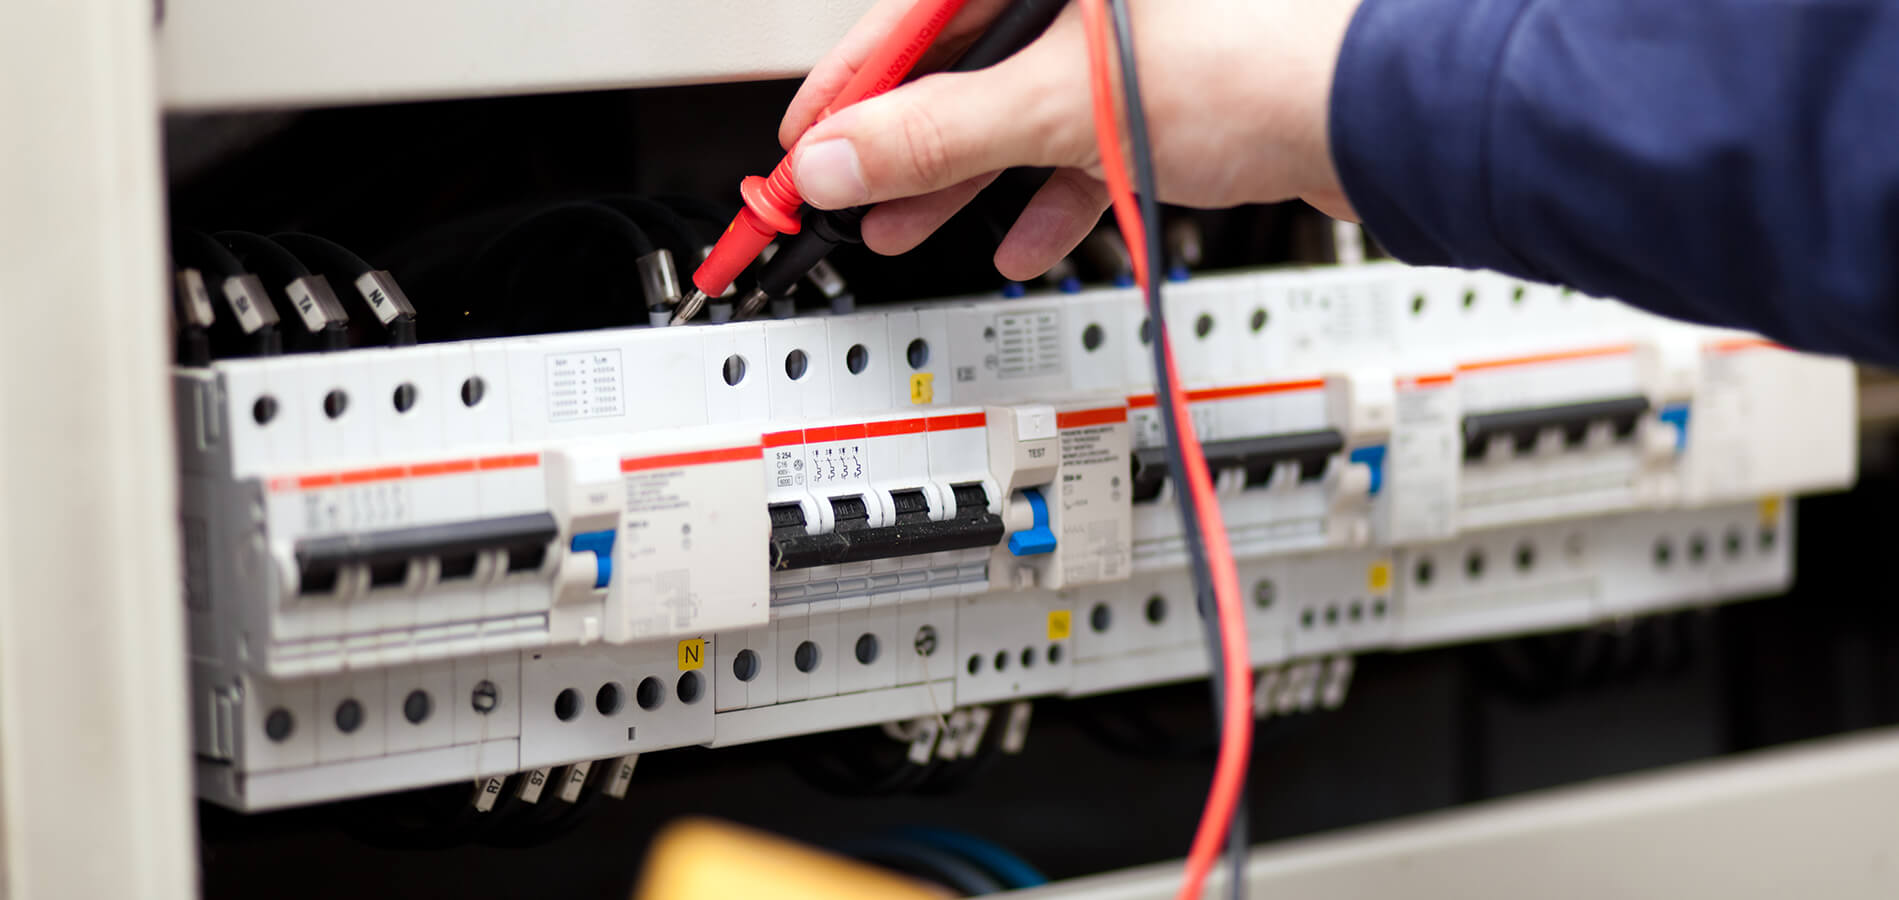 Electrical Testing London Inspections In H2 How To Test Circuits Property Services